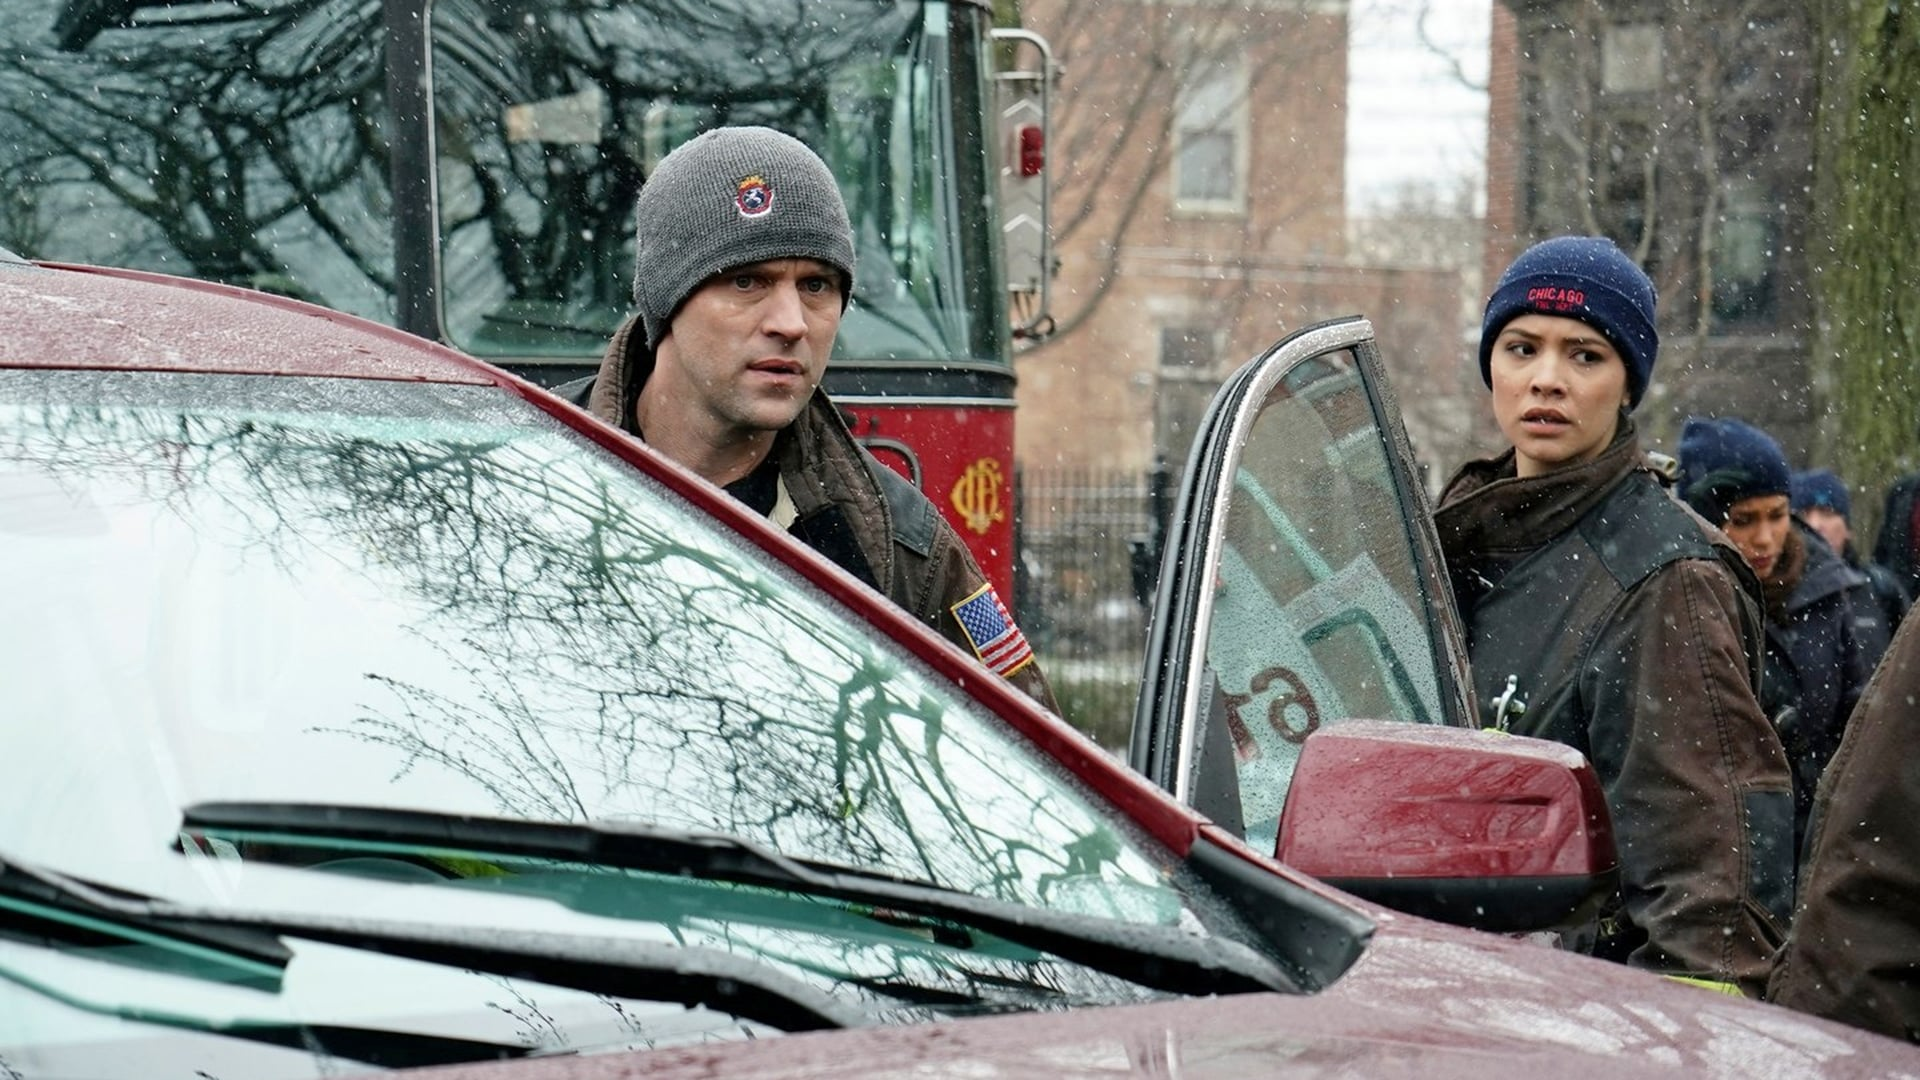 Chicago Fire - Season 6 Episode 22 : Geh aufs Ganze